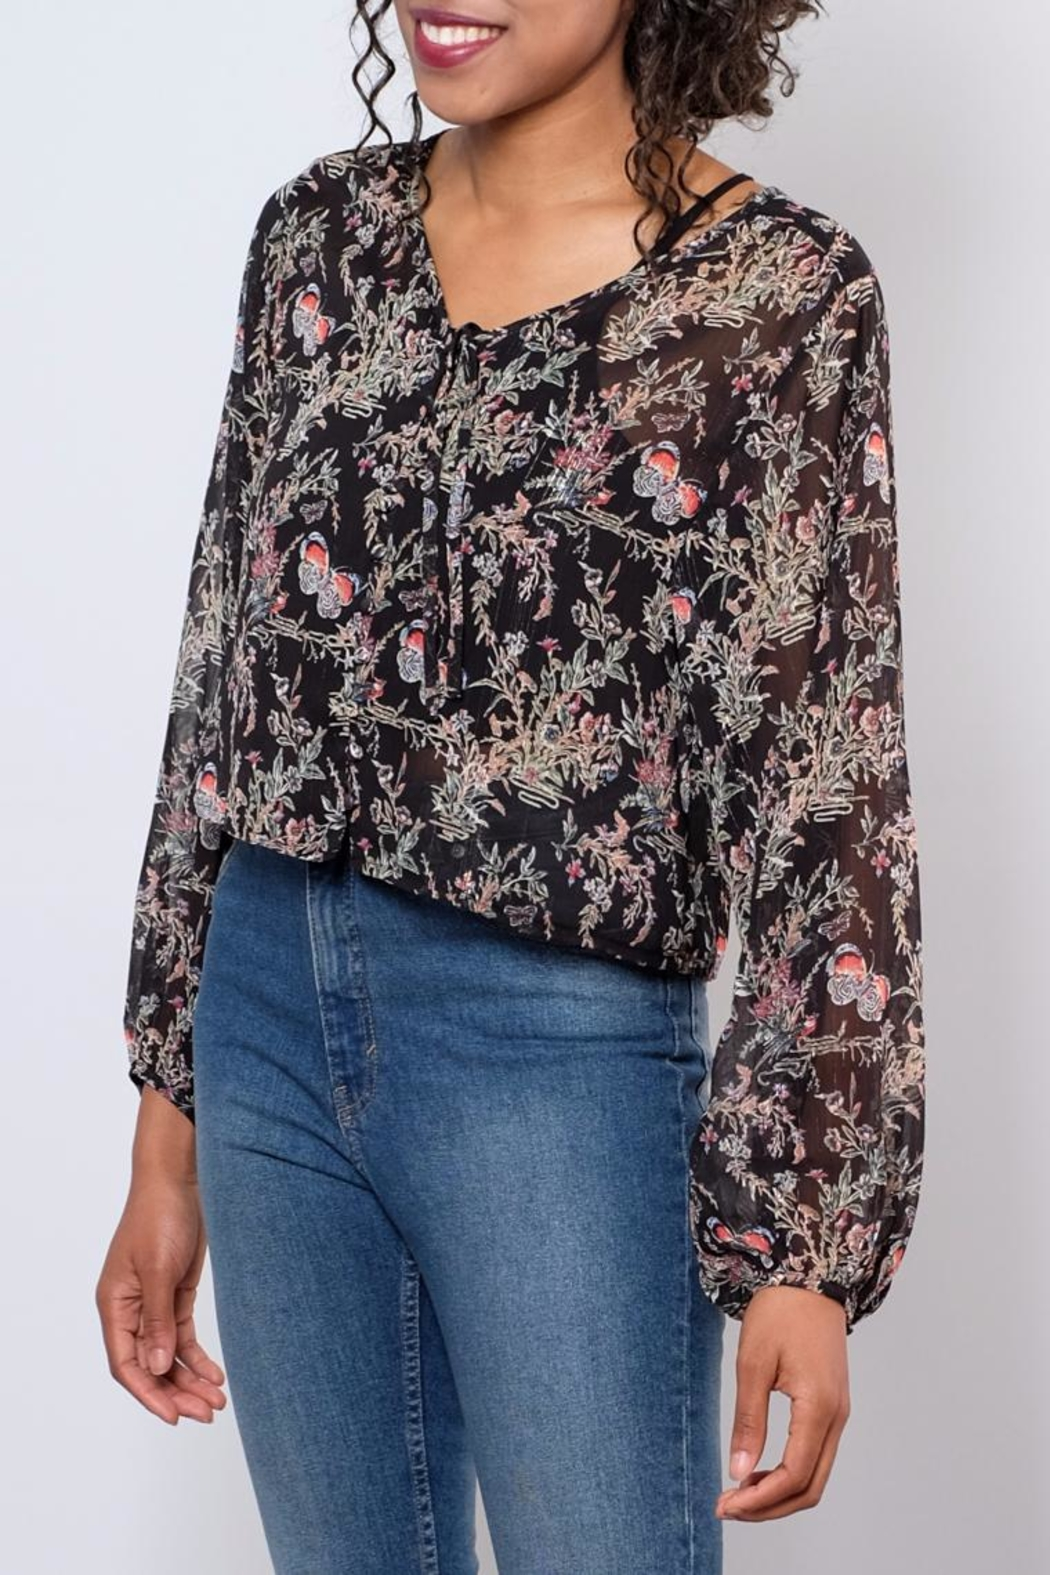 LoveRiche Sheer Printed Top - Front Full Image